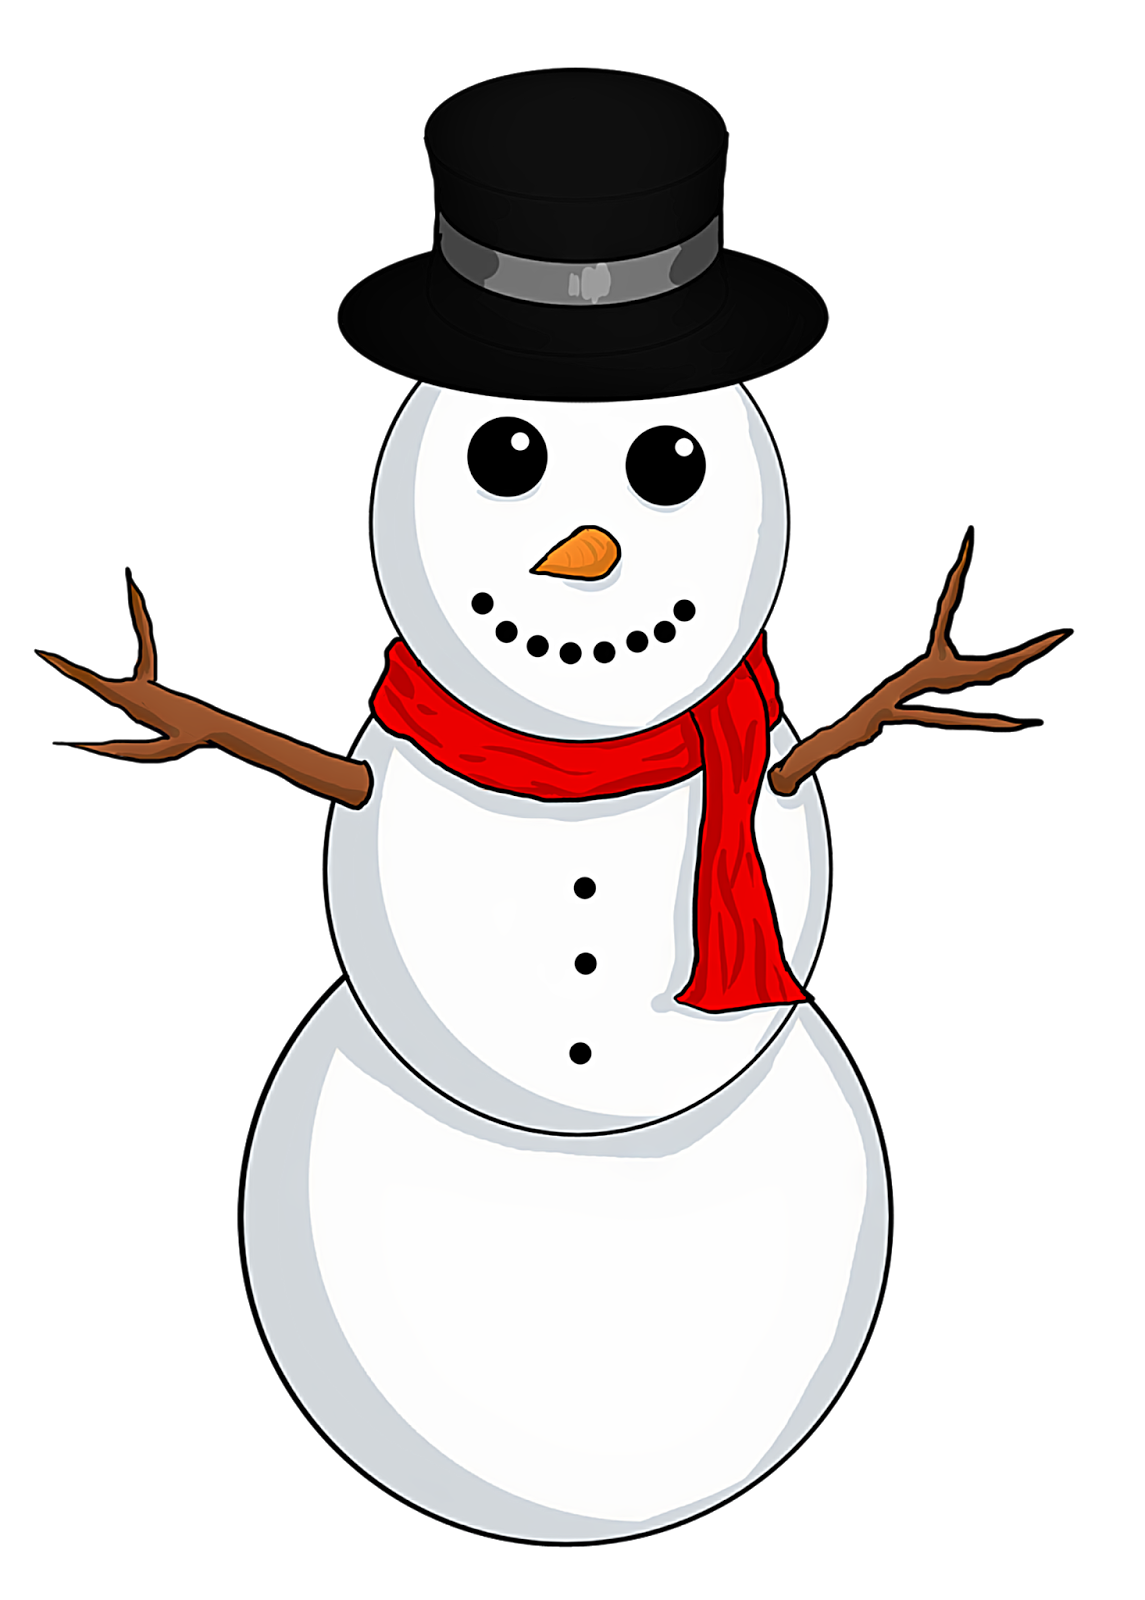 Free Christmas Clip Arts Images In High Resolution For Hd Wallpapers